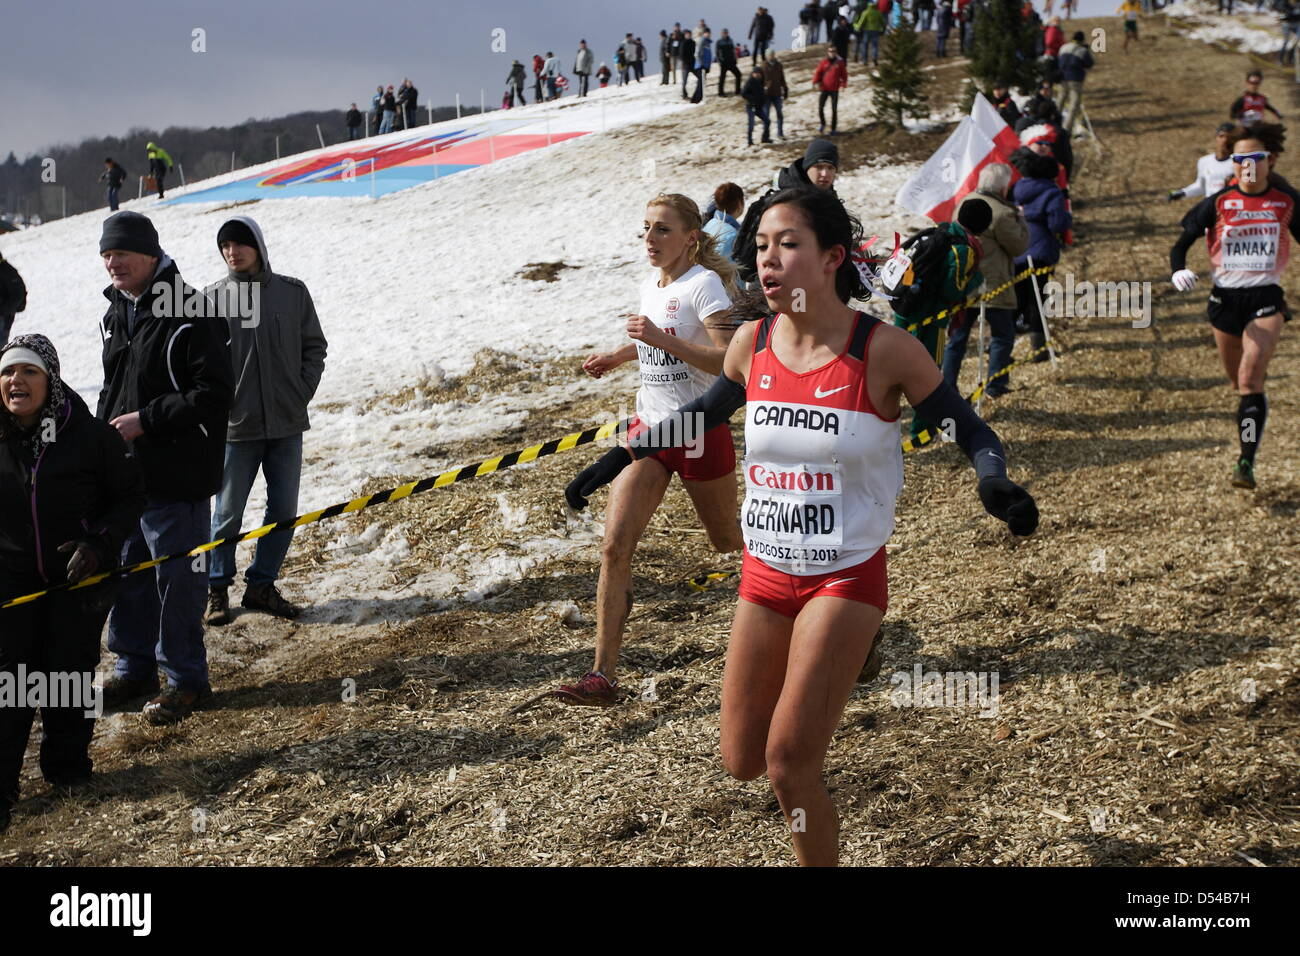 Bydgoszcz, Poland 24th, March 2013 IAAF World Cross Country Chamiponships. Senior Race Woman.  Pictured: Maria Bernard - Stock Image